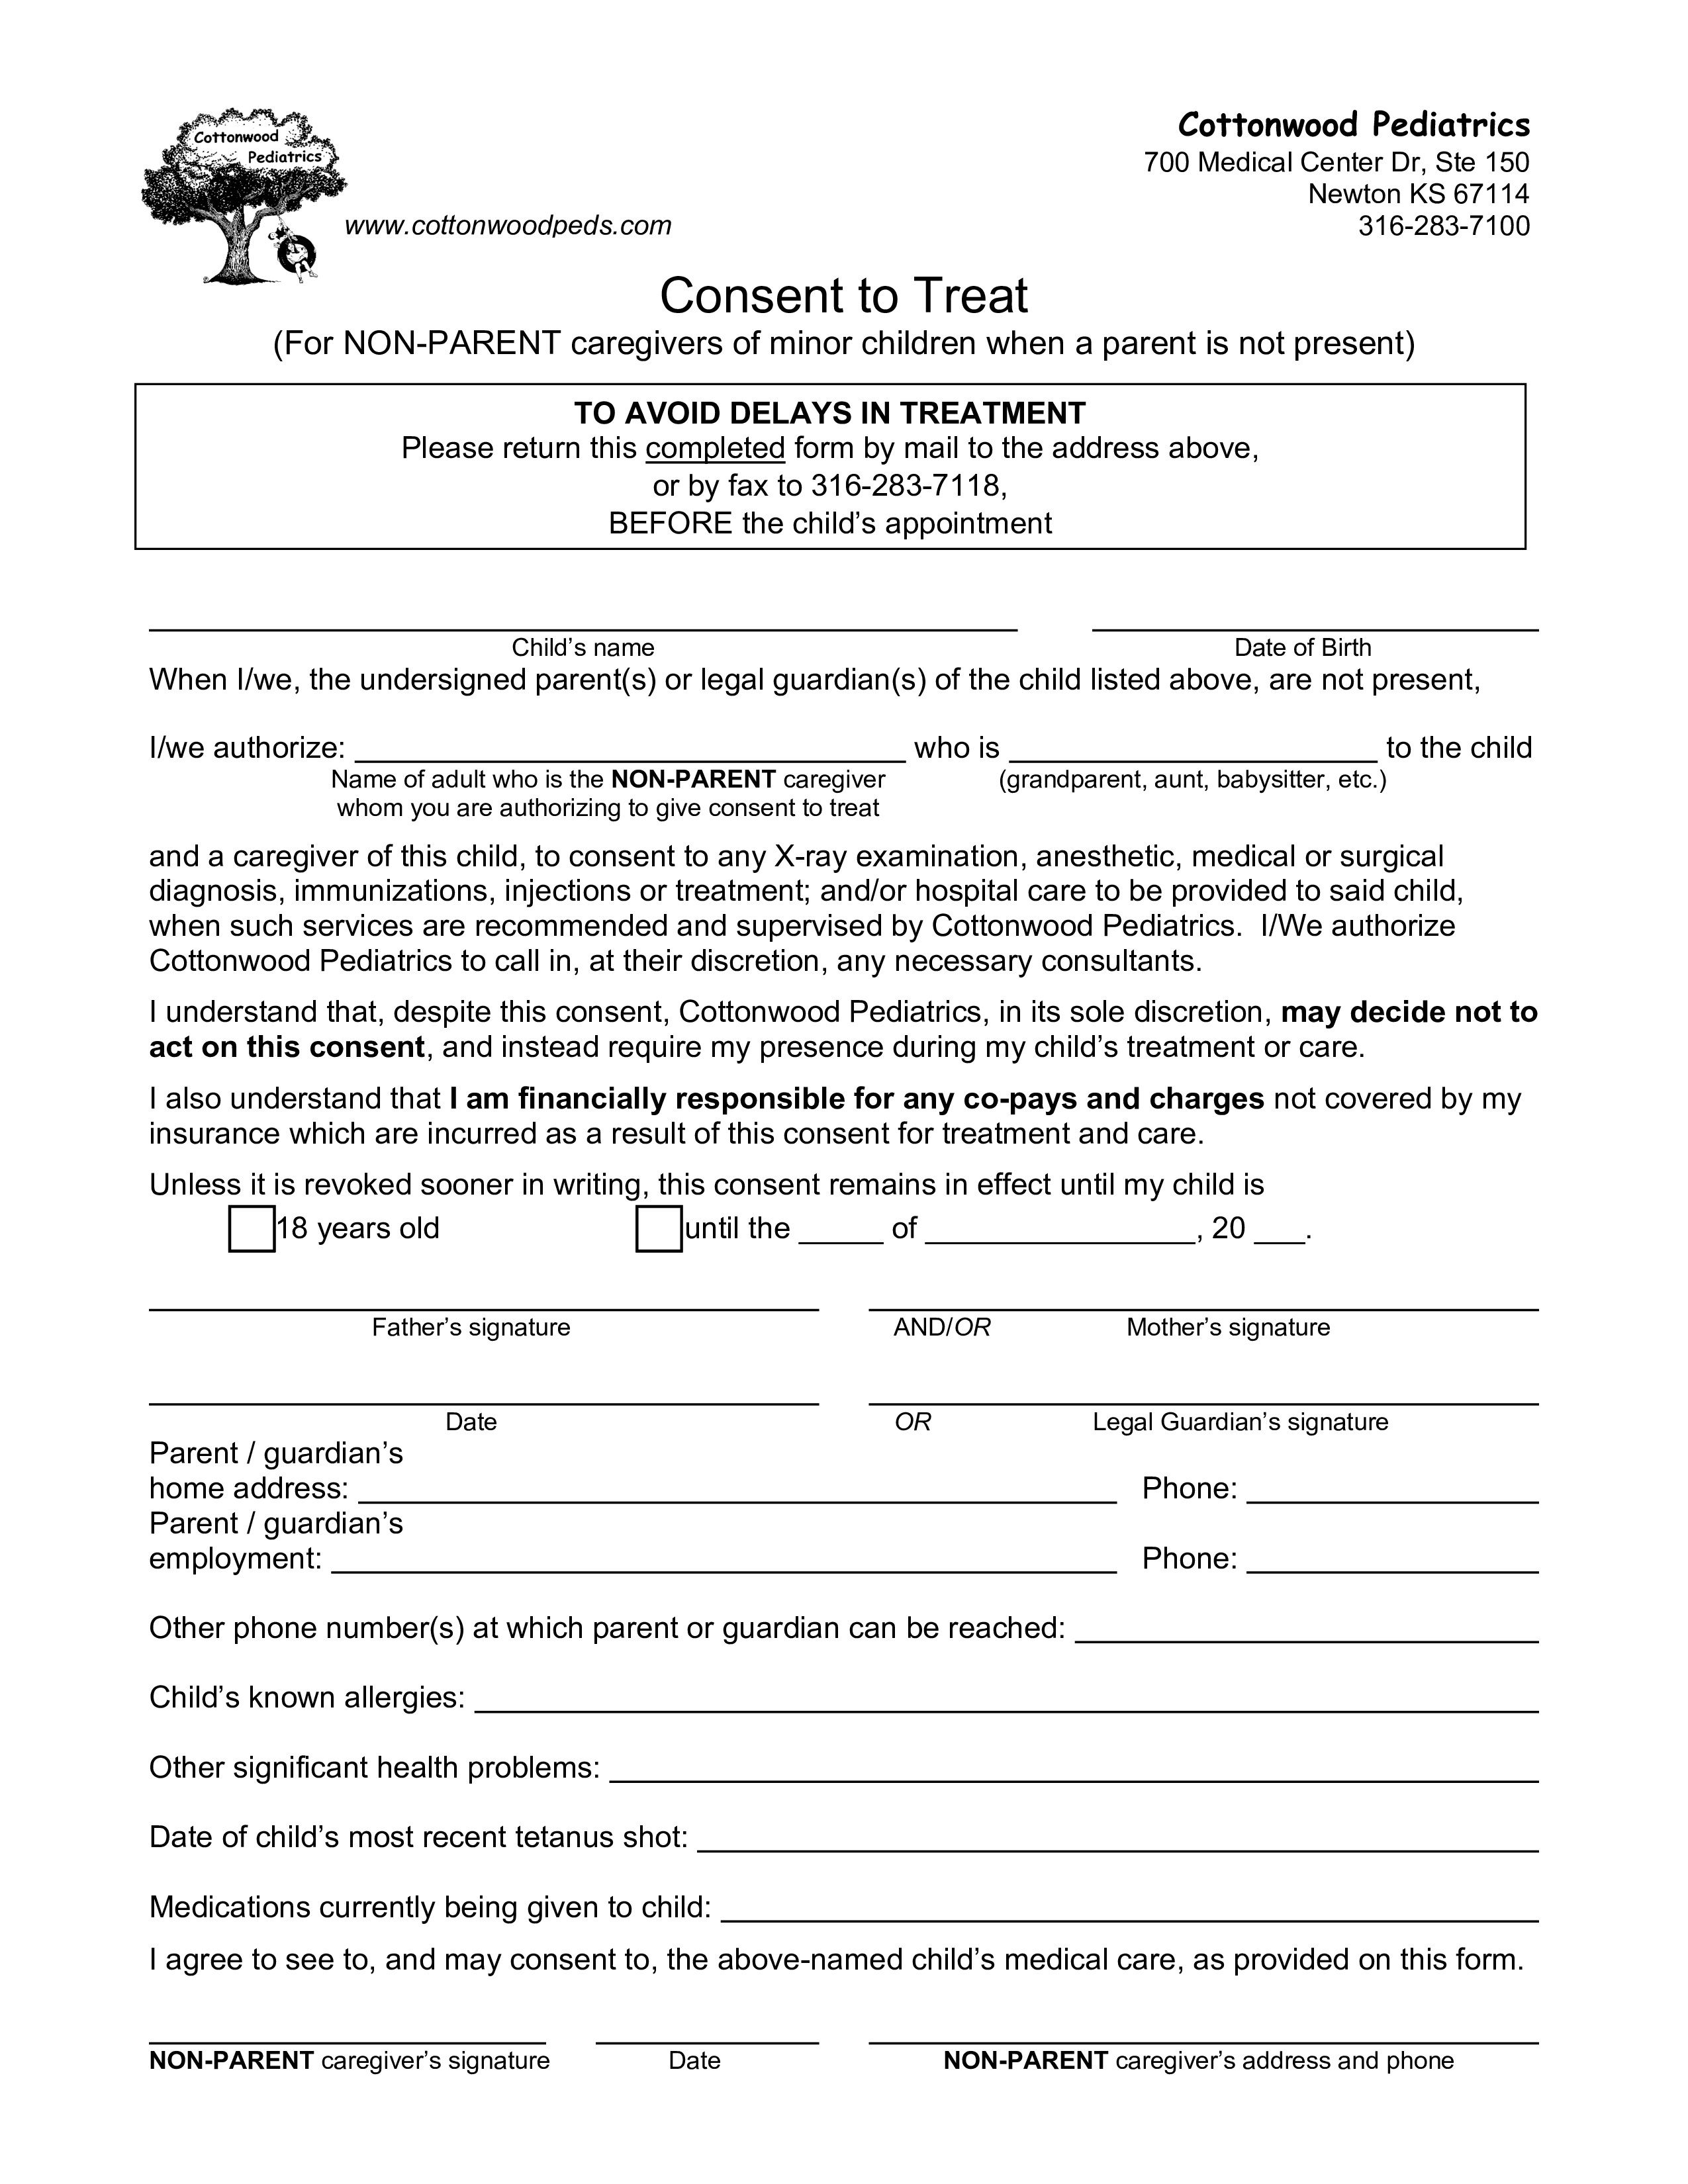 004 Simple Medical Release Form Template High Def  Free Consent Uk For MinorFull